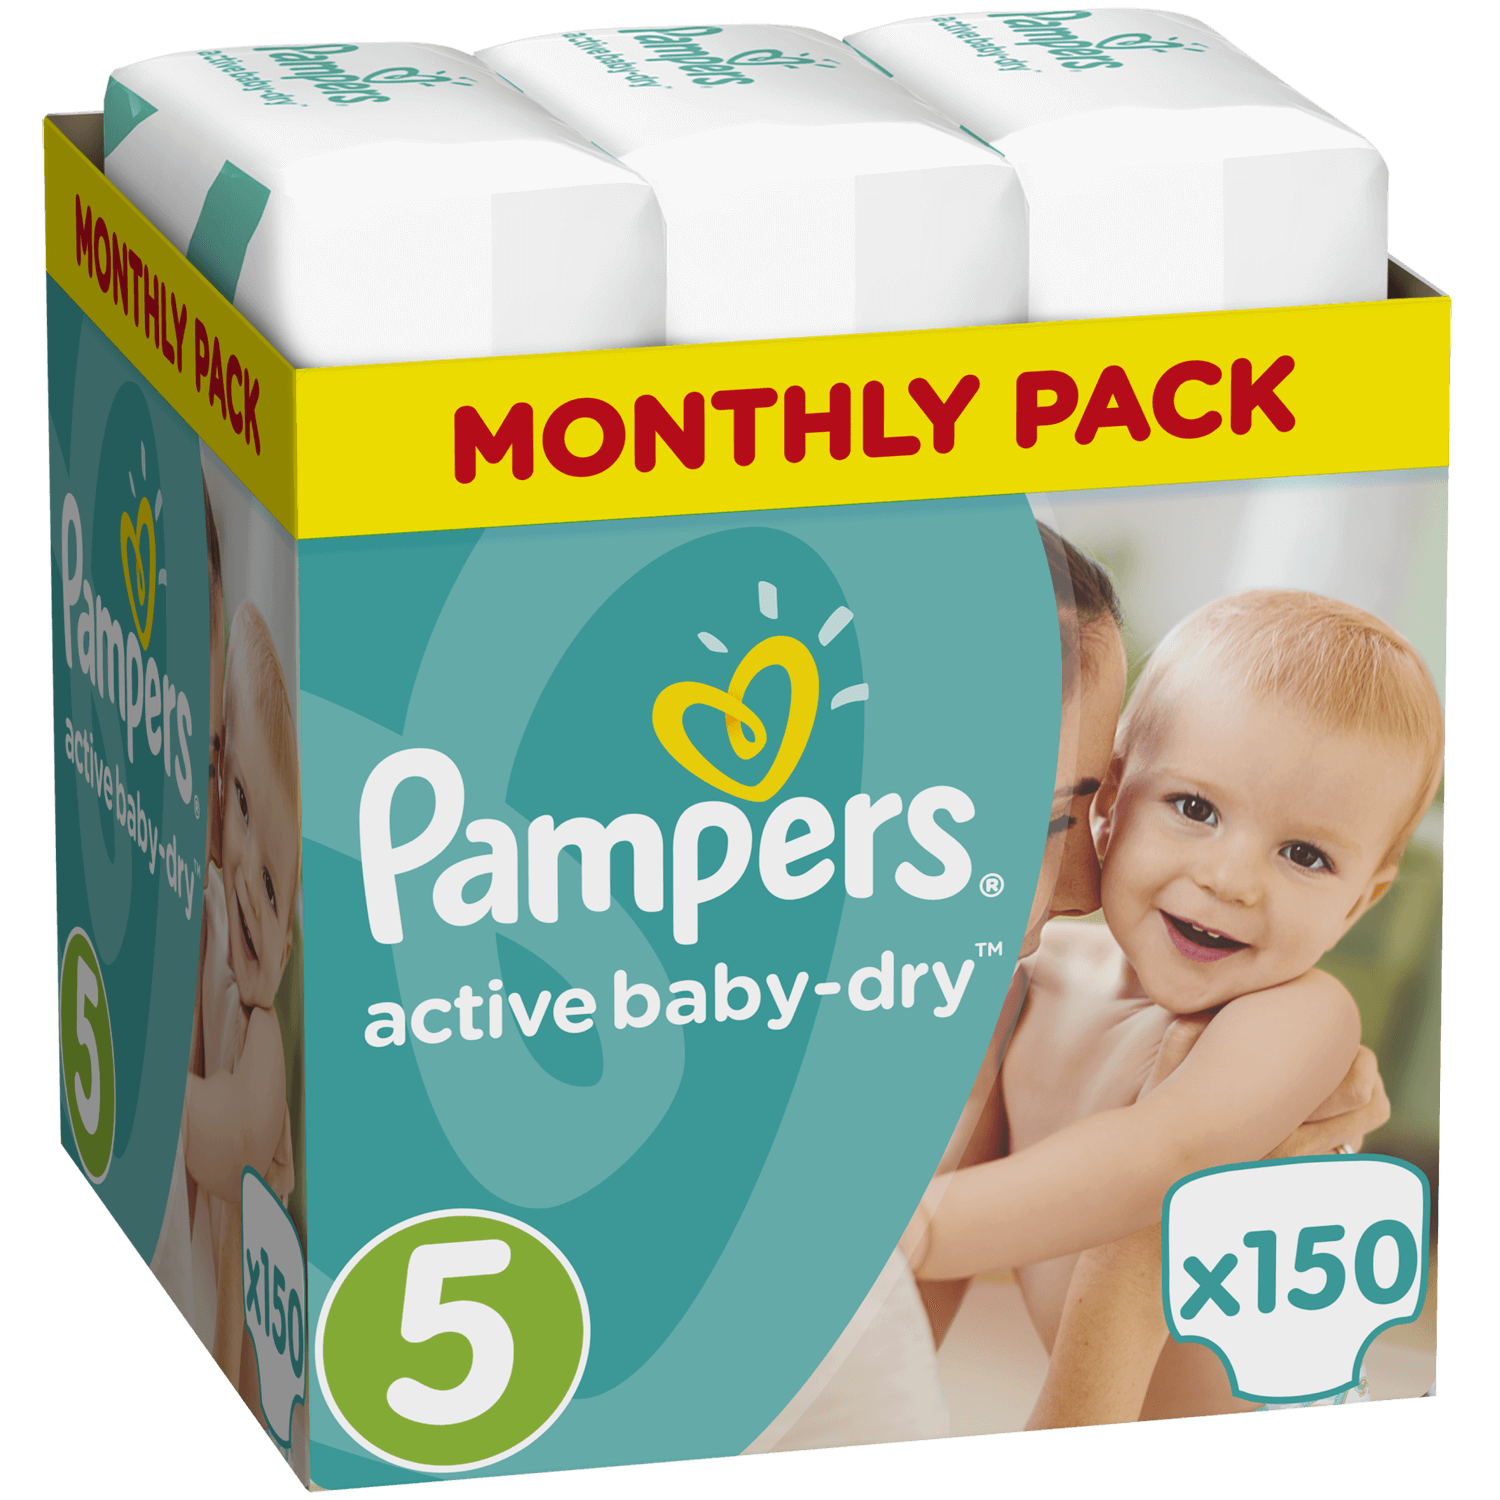 Pampers Active Baby Dry Monthly Pack No5 (11-18kg) 150 πάνες, μόνο 0,27€ / πάνα μητέρα παιδί   περιποίηση για το μωρό   πάνες για το μωρό